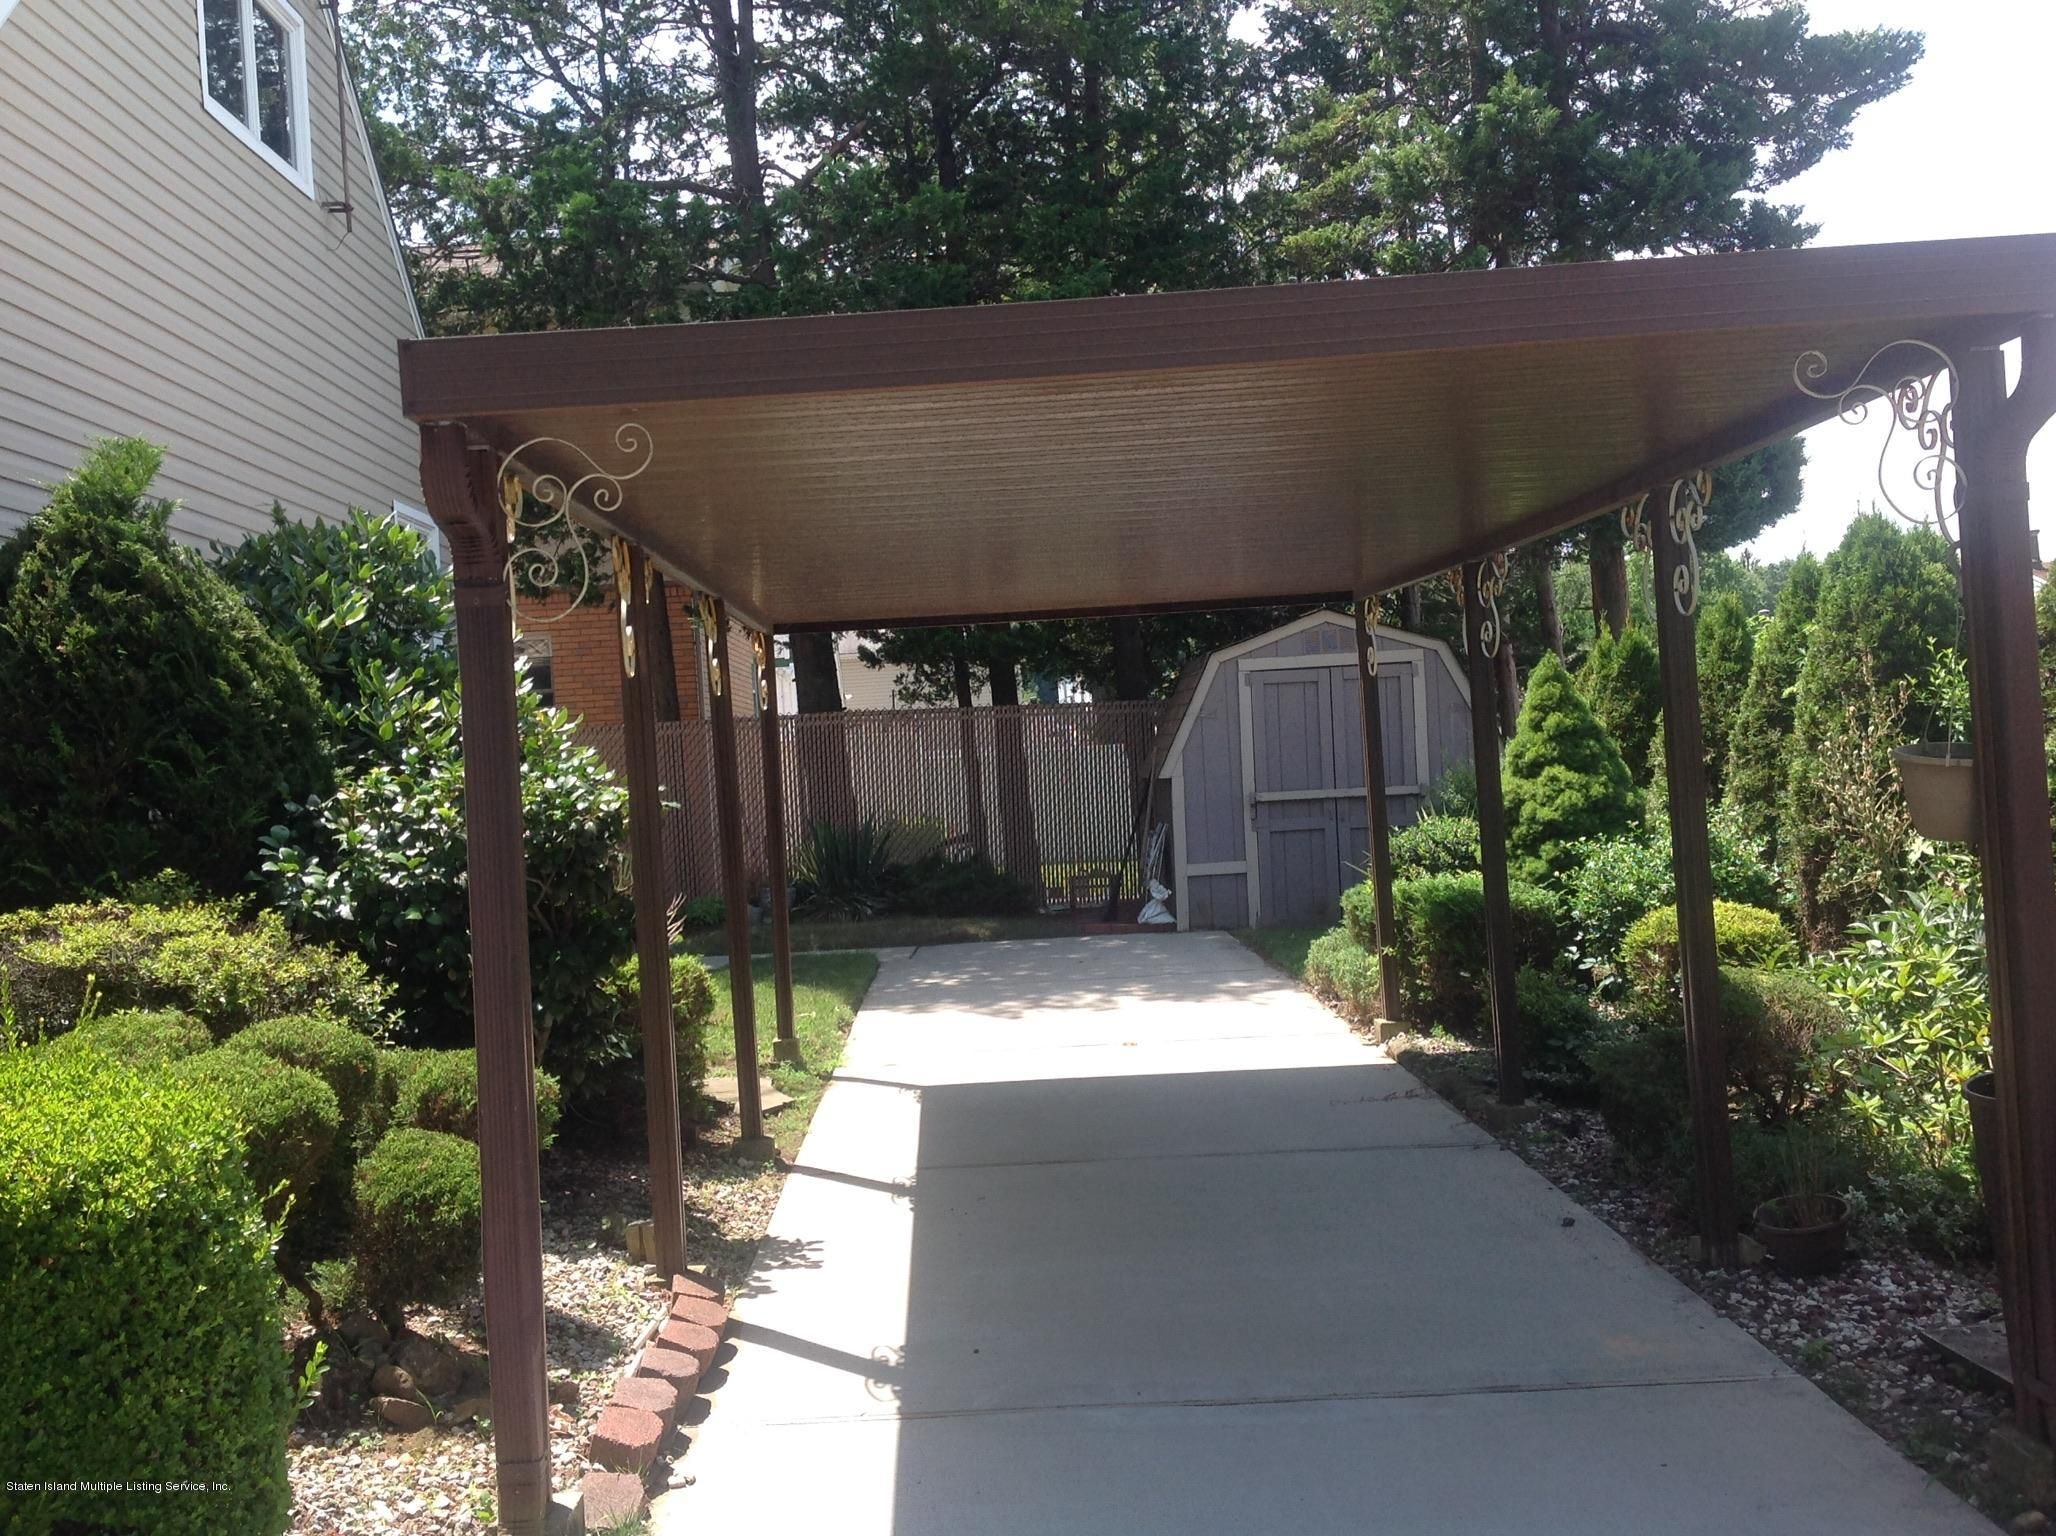 Single Family - Detached 28 Queen Street  Staten Island, NY 10314, MLS-1148779-3